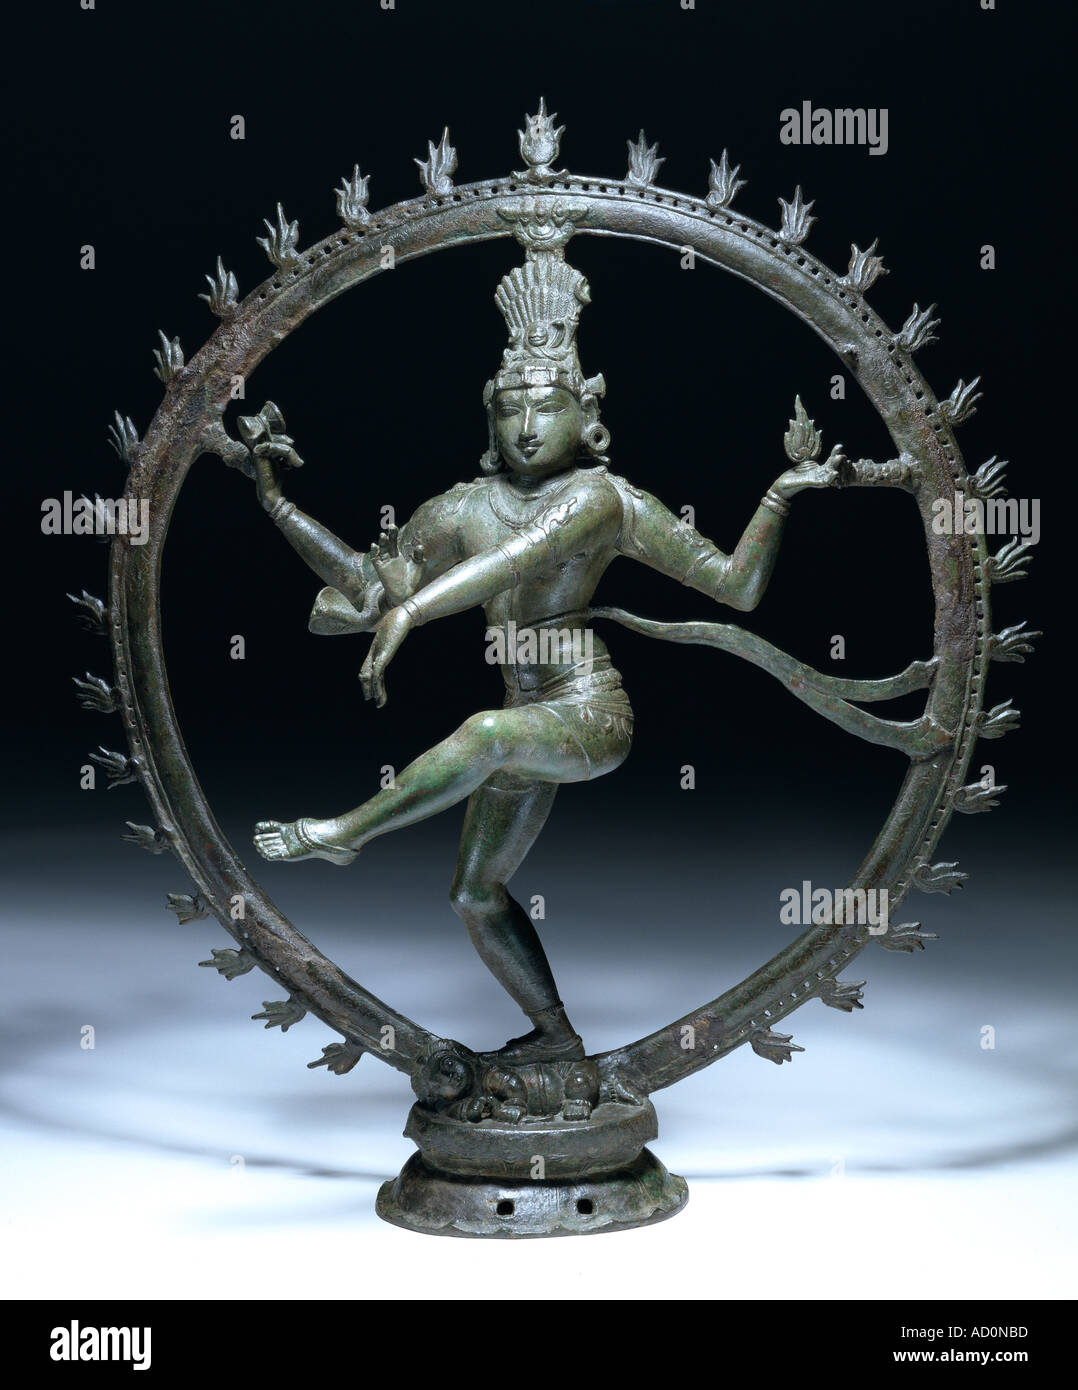 Shiva Nataraja, Lord of the Dance. Tamil Nadu, India, 12th century. - Stock Image